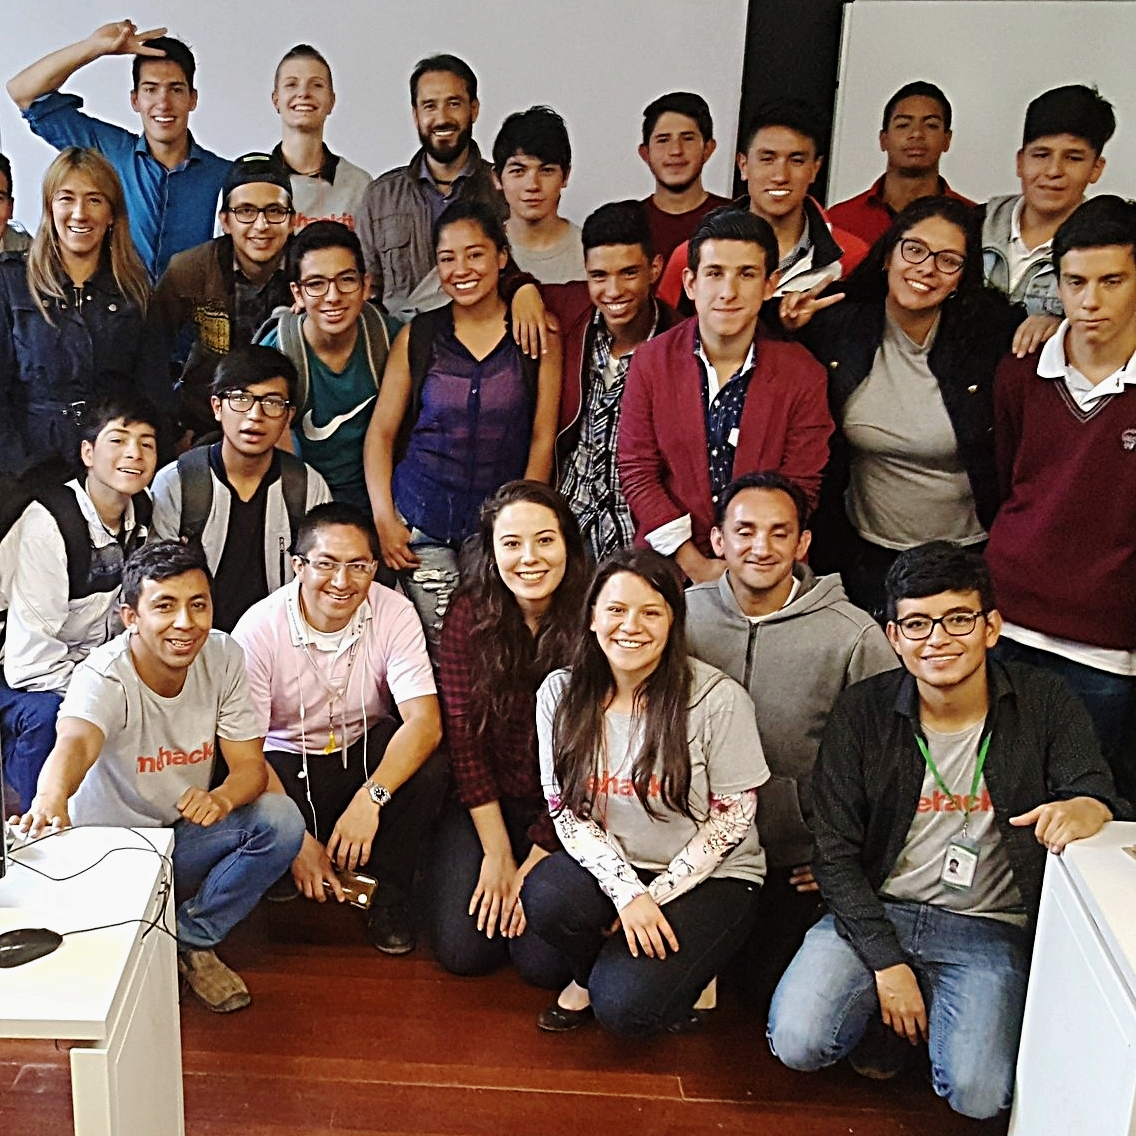 EDUCATION SOUL - Educator training week for 20 educators and 400 students (Spring 2018, Bogota, Colombia)